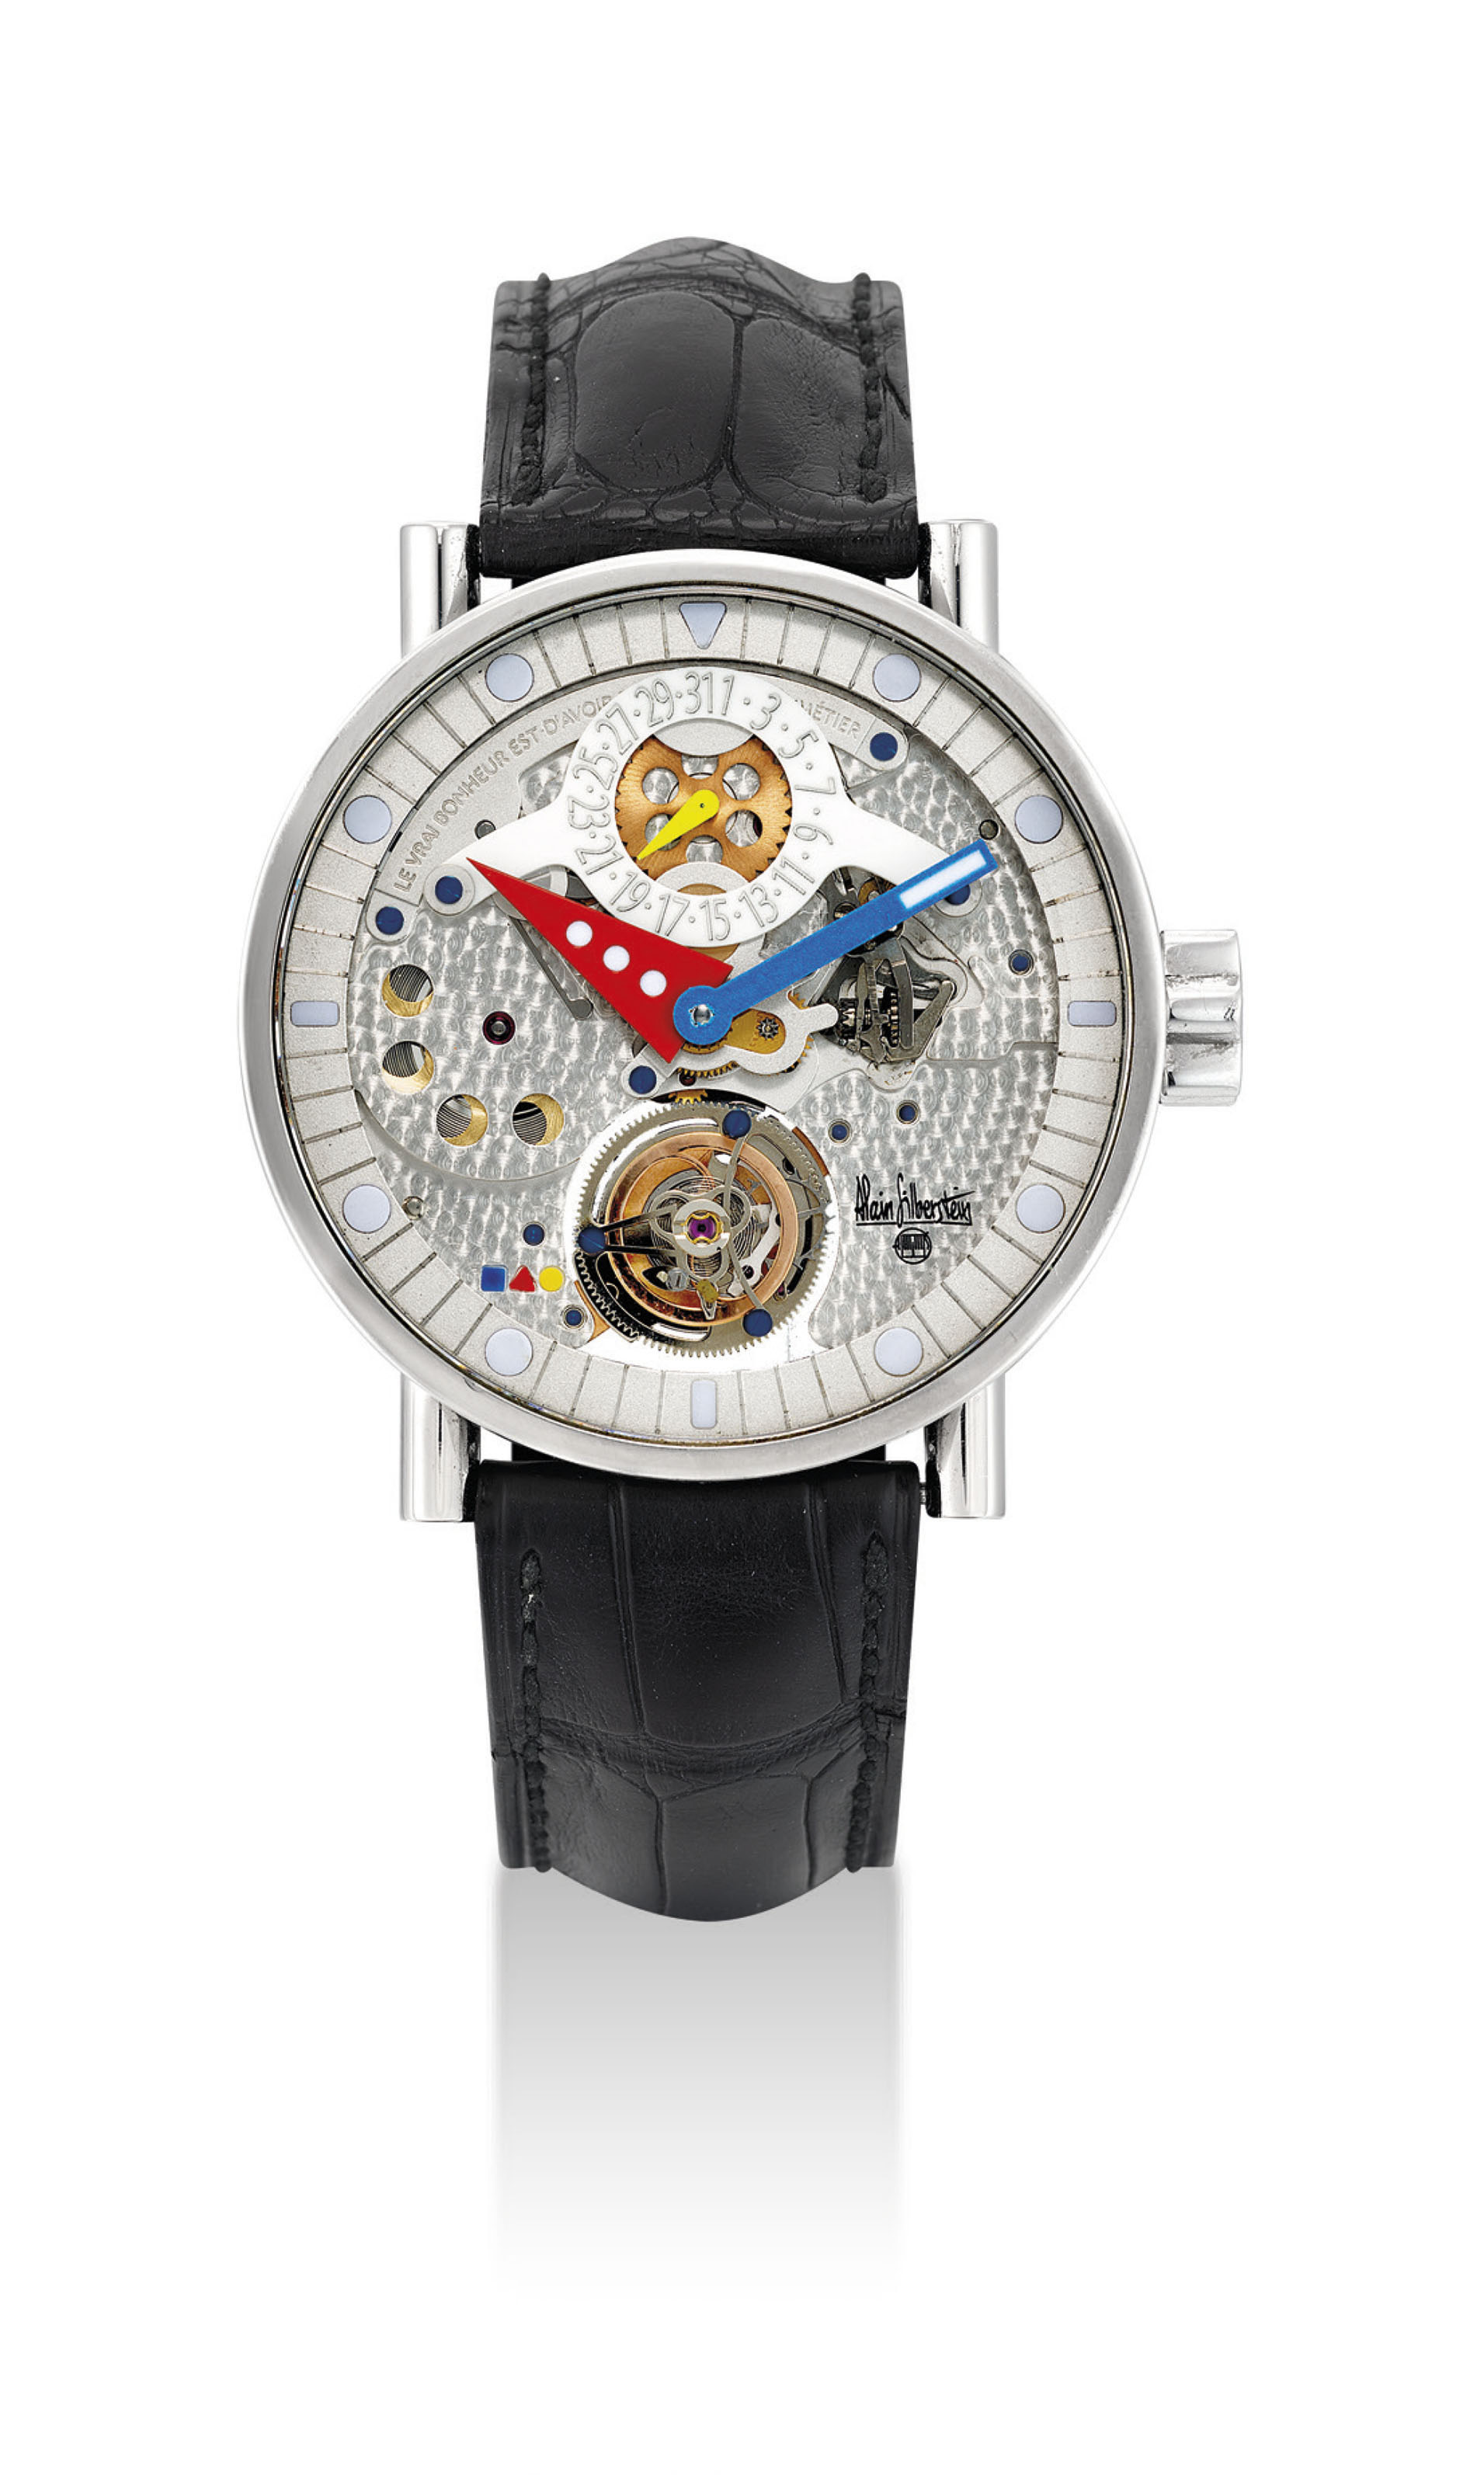 ALAIN SILBERSTEIN. A STAINLESS STEEL LIMITED EDITION SEMI-SKELETONISED TOURBILLON WRISTWATCH WITH DATE